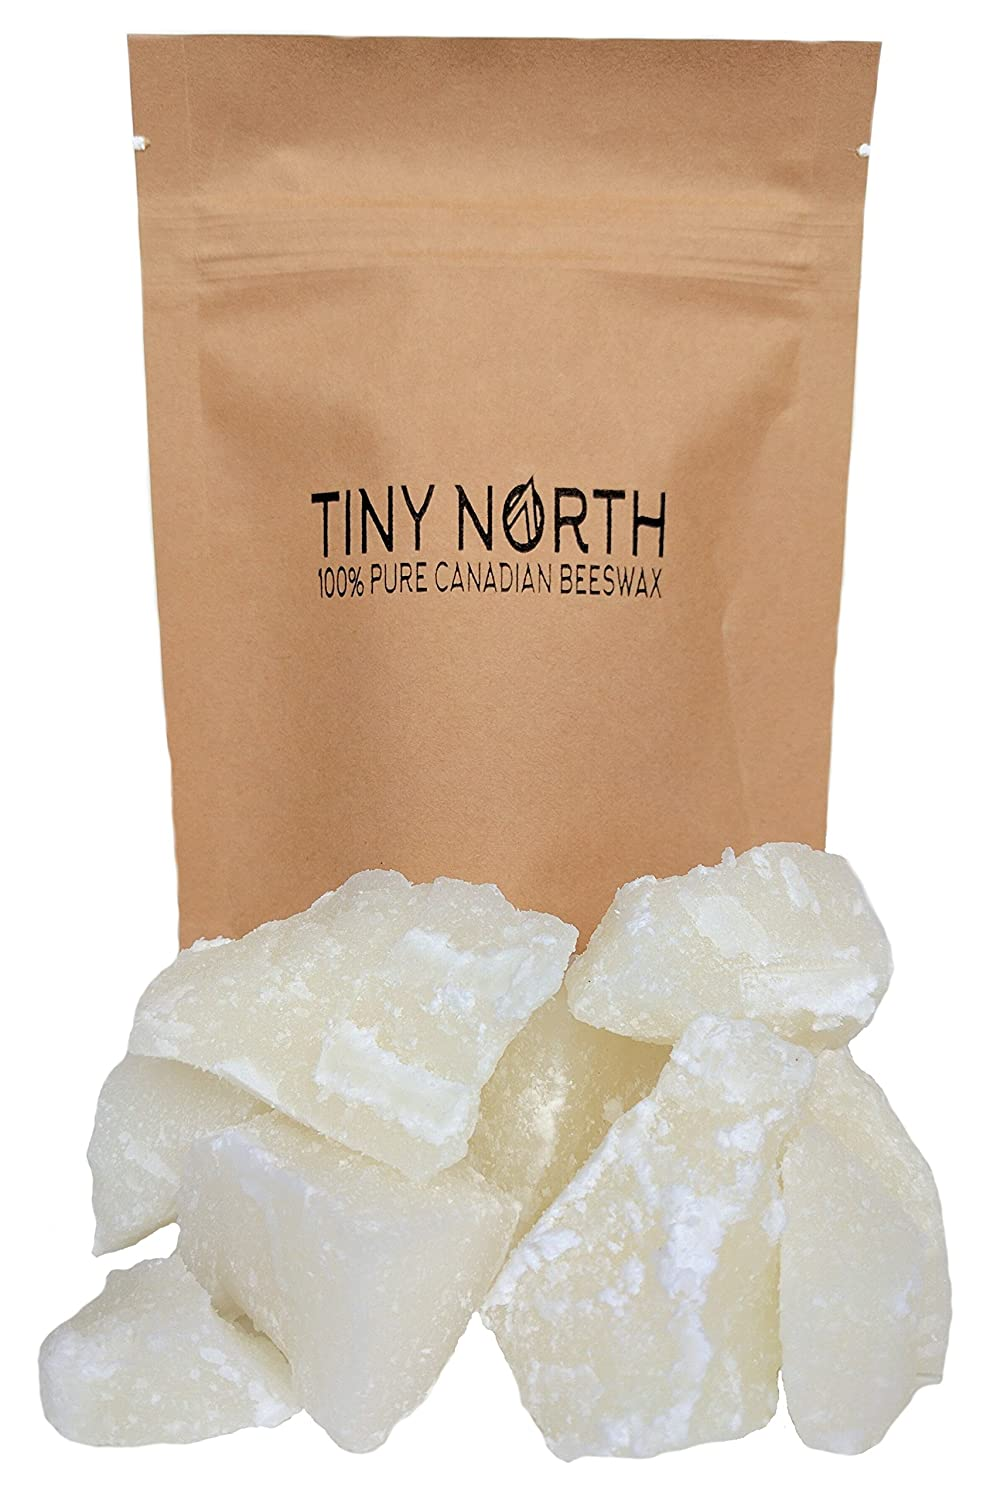 100% Pure Canadian Beeswax - Cosmetic Grade - Charcoal Filtered - All Natural Chunks - White - 50 g (1.75 oz) Tiny North